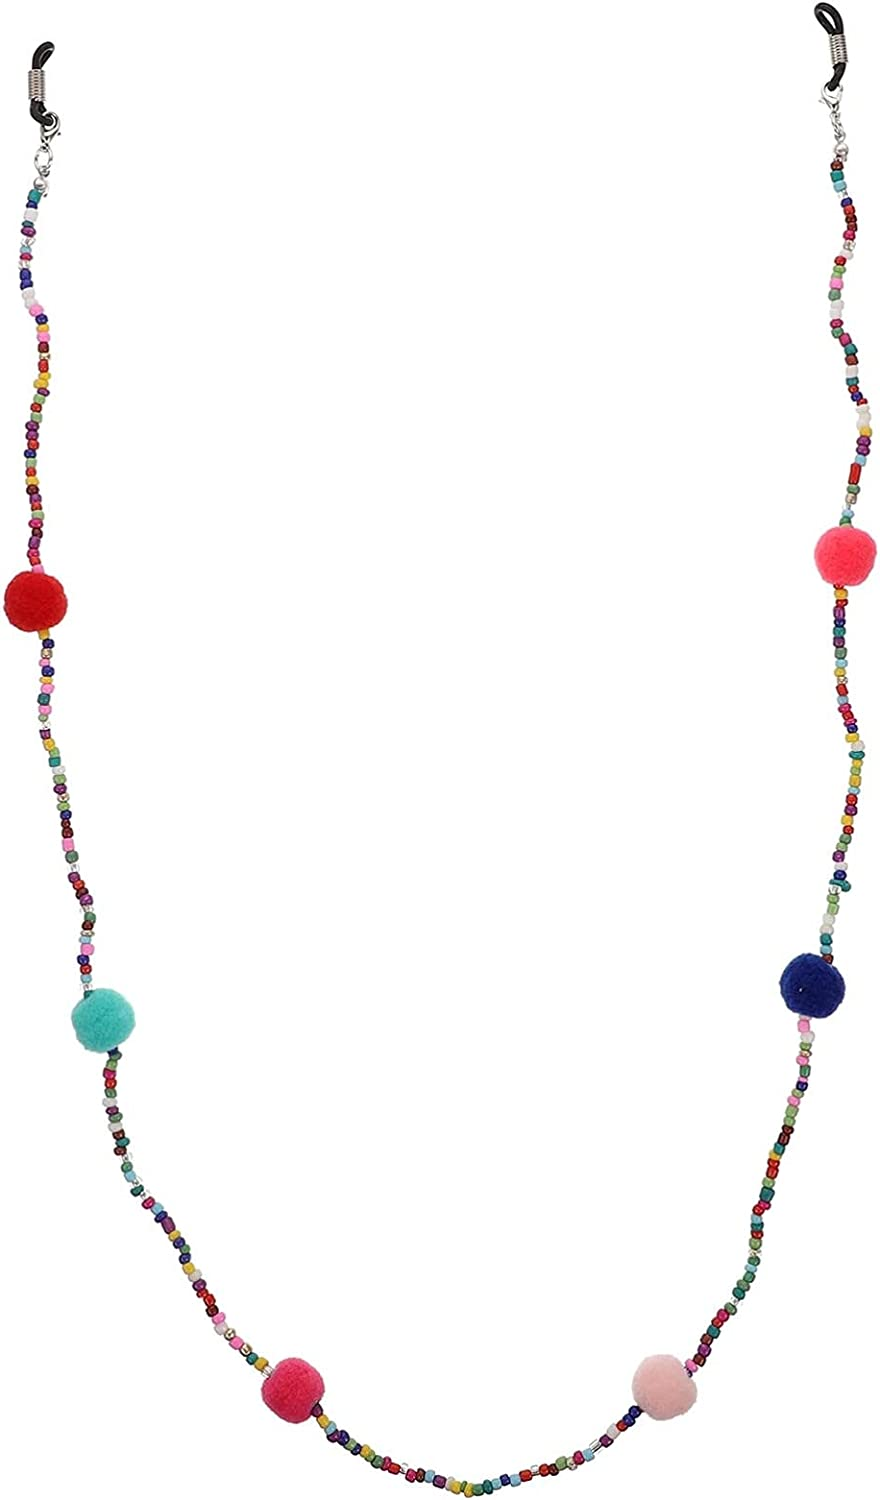 EXCEART Bead Eyeglass Strap Holder Beaded Chain Ear Protector Mouth Cover Lanyard Non- Skid Face Holder Adjustable Necklace Strap for Men Women Colorful